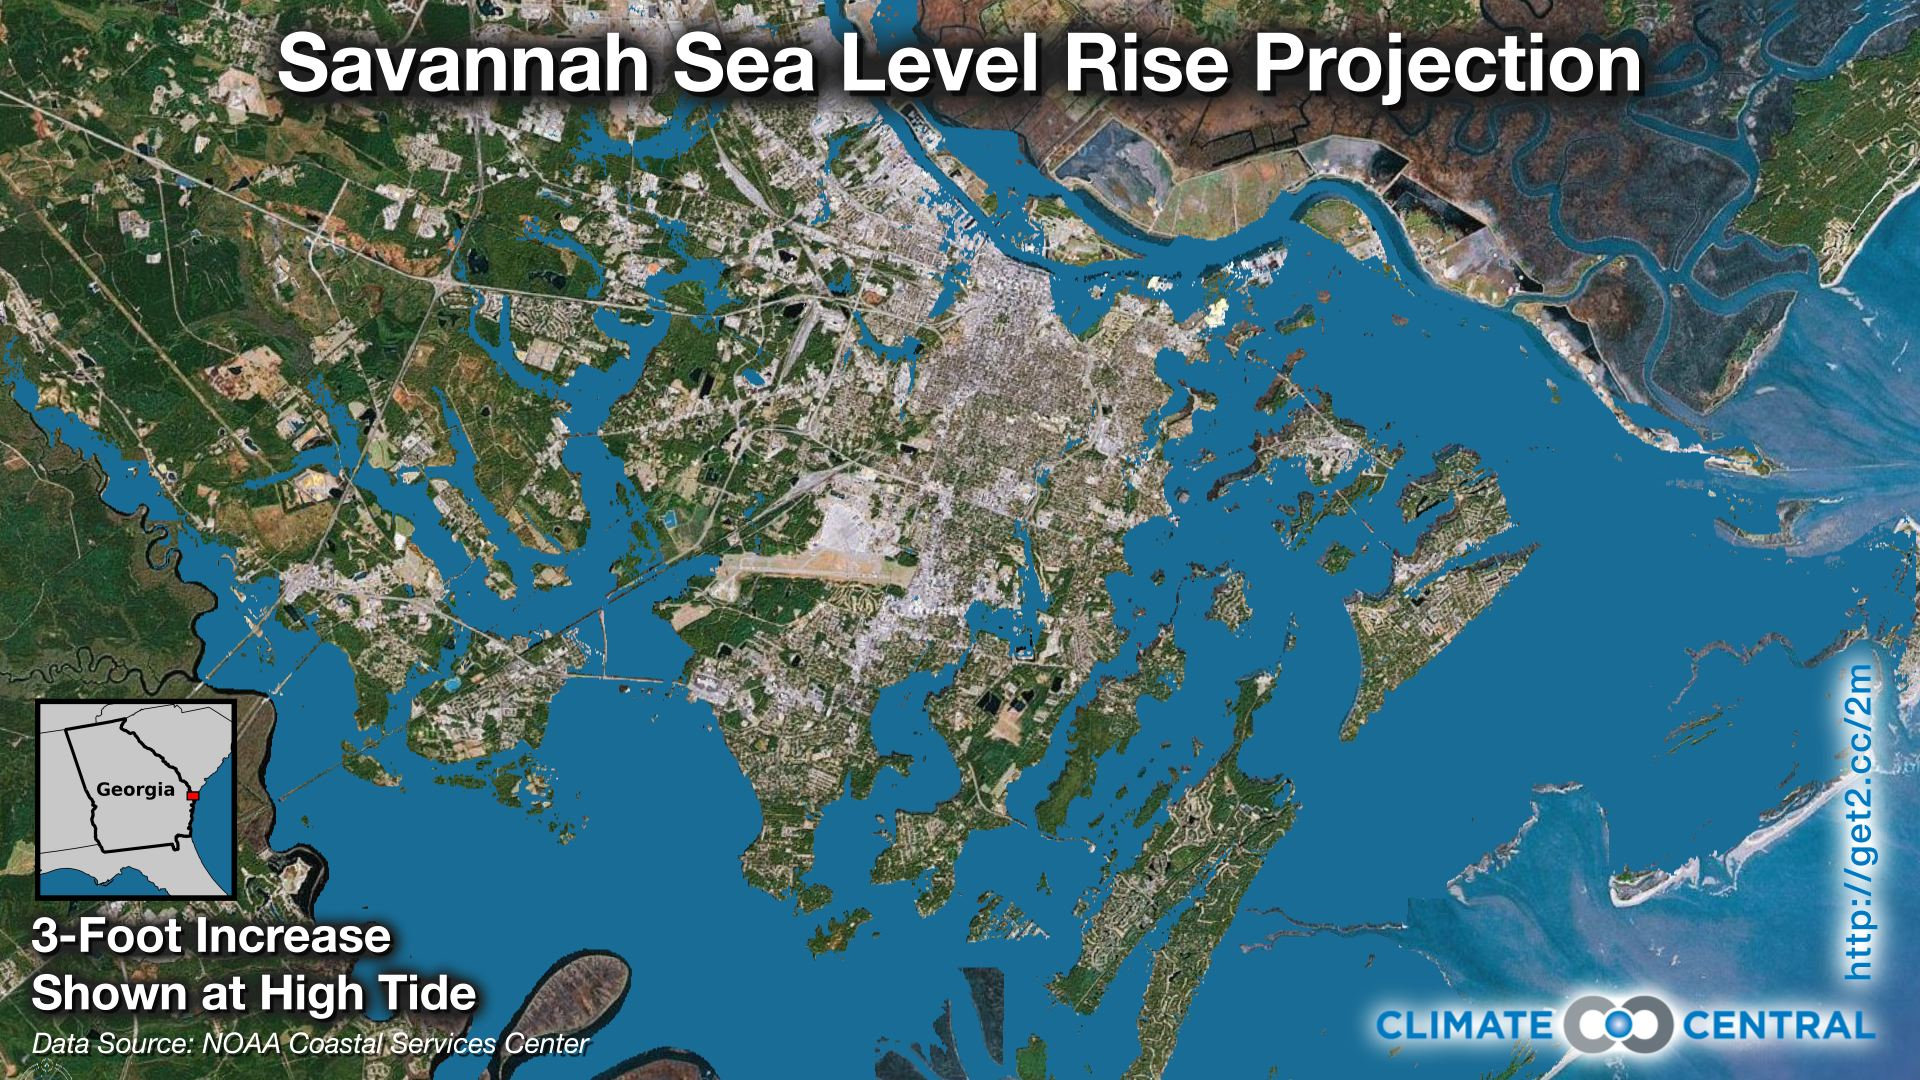 Savannah Sea Level Rise Projection Climate Central - Rising oceans map